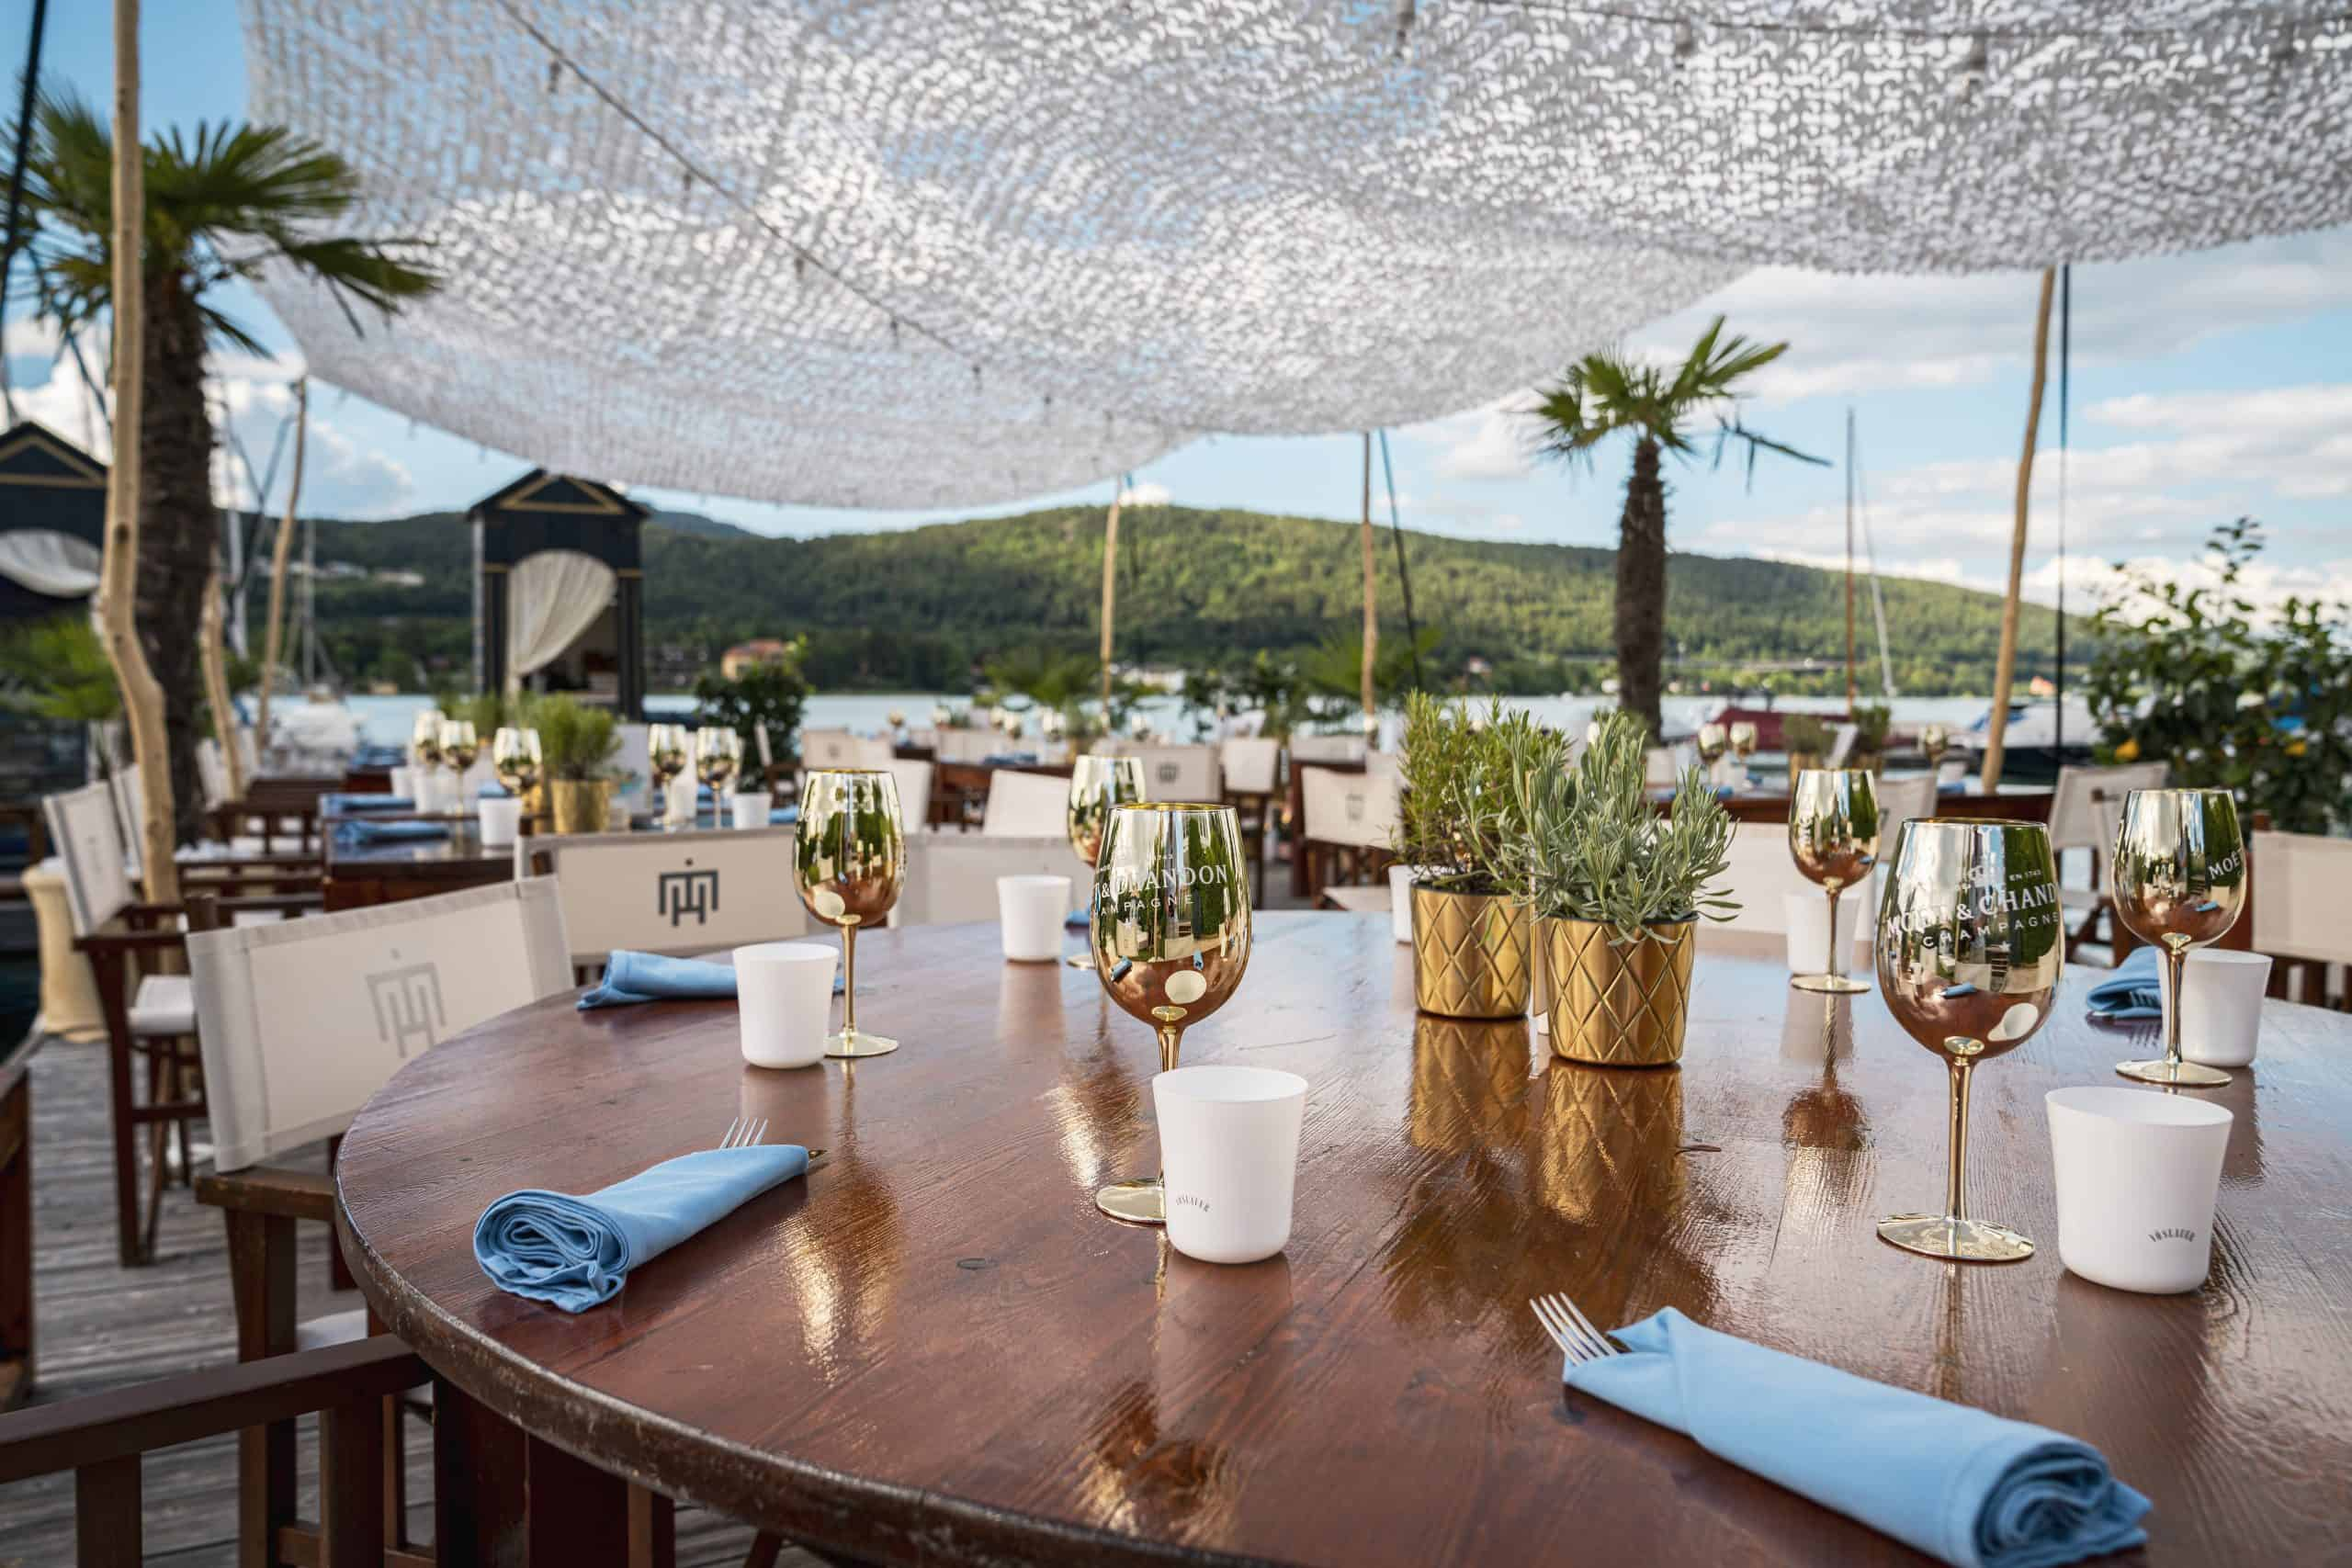 MH-Moet-Chandon-Summer-Residence-2020-06-11_018-scaled